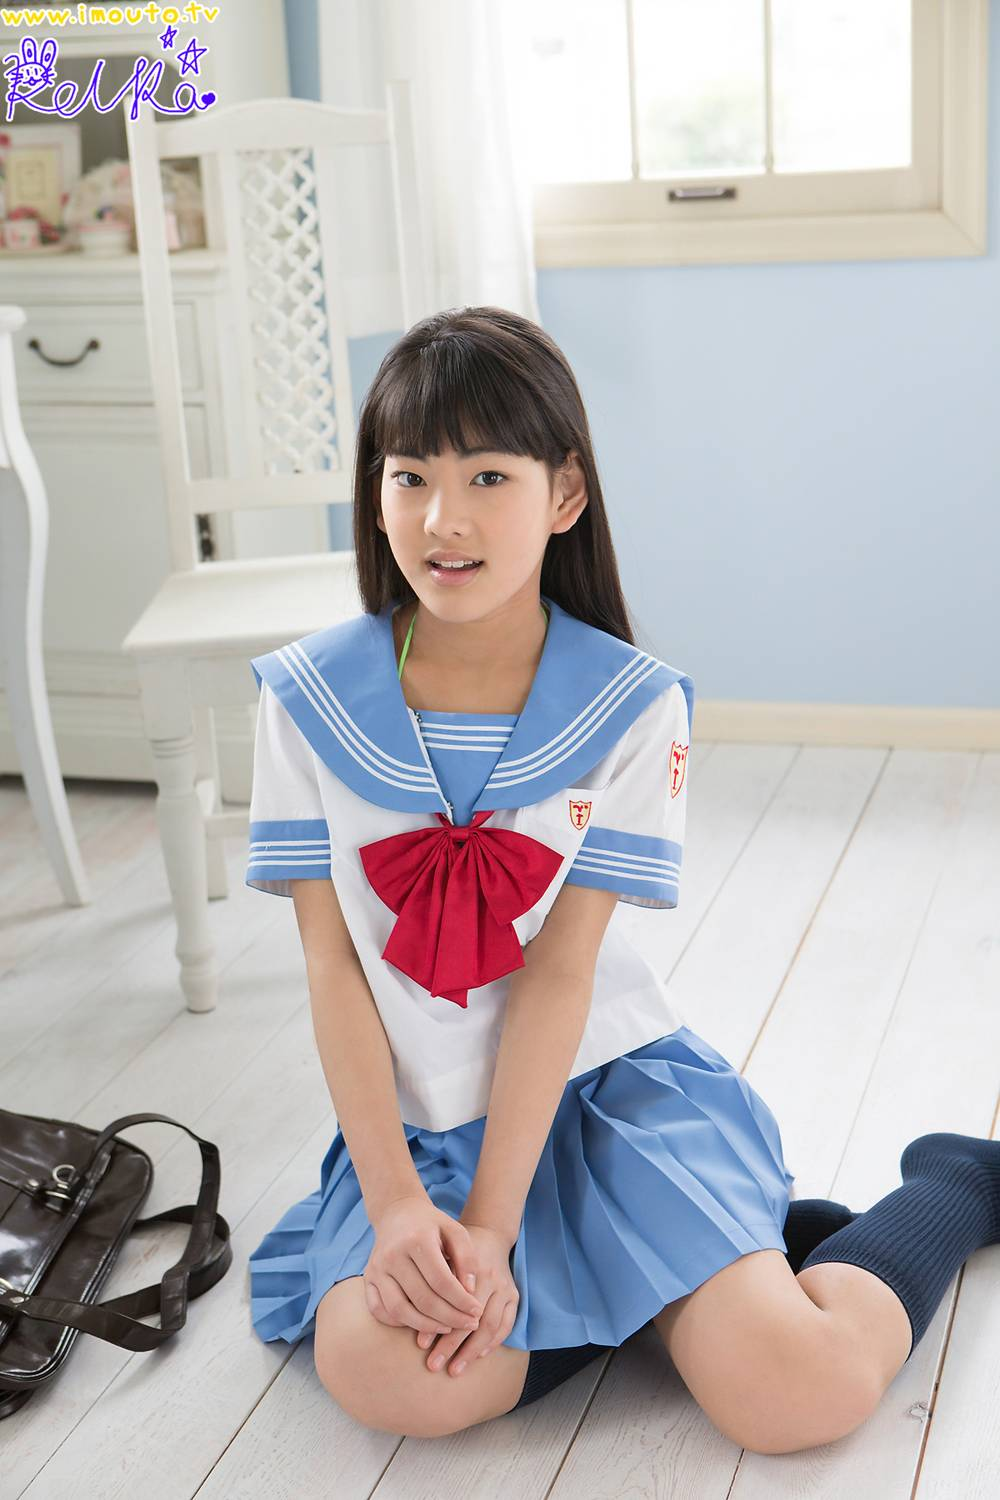 Imouto Tv Junior Idol Cameltoe Sex Porn Images Hot Naked